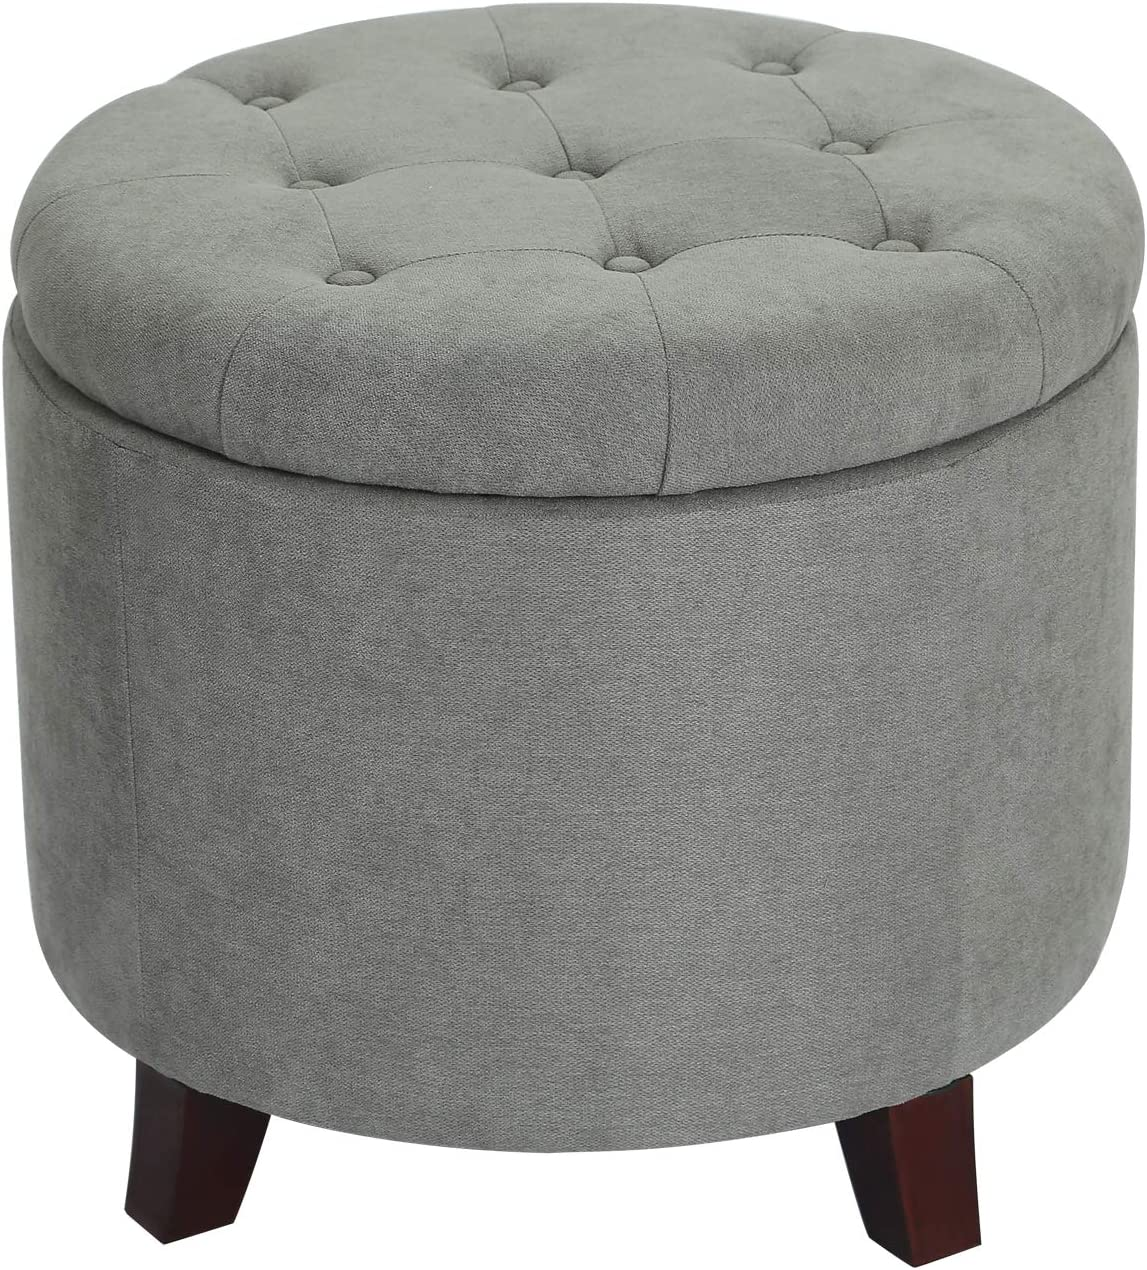 Edeco Round Storage Ottoman Tufted Fabric Footrest With Removable Lid Grey Kitchen Dining